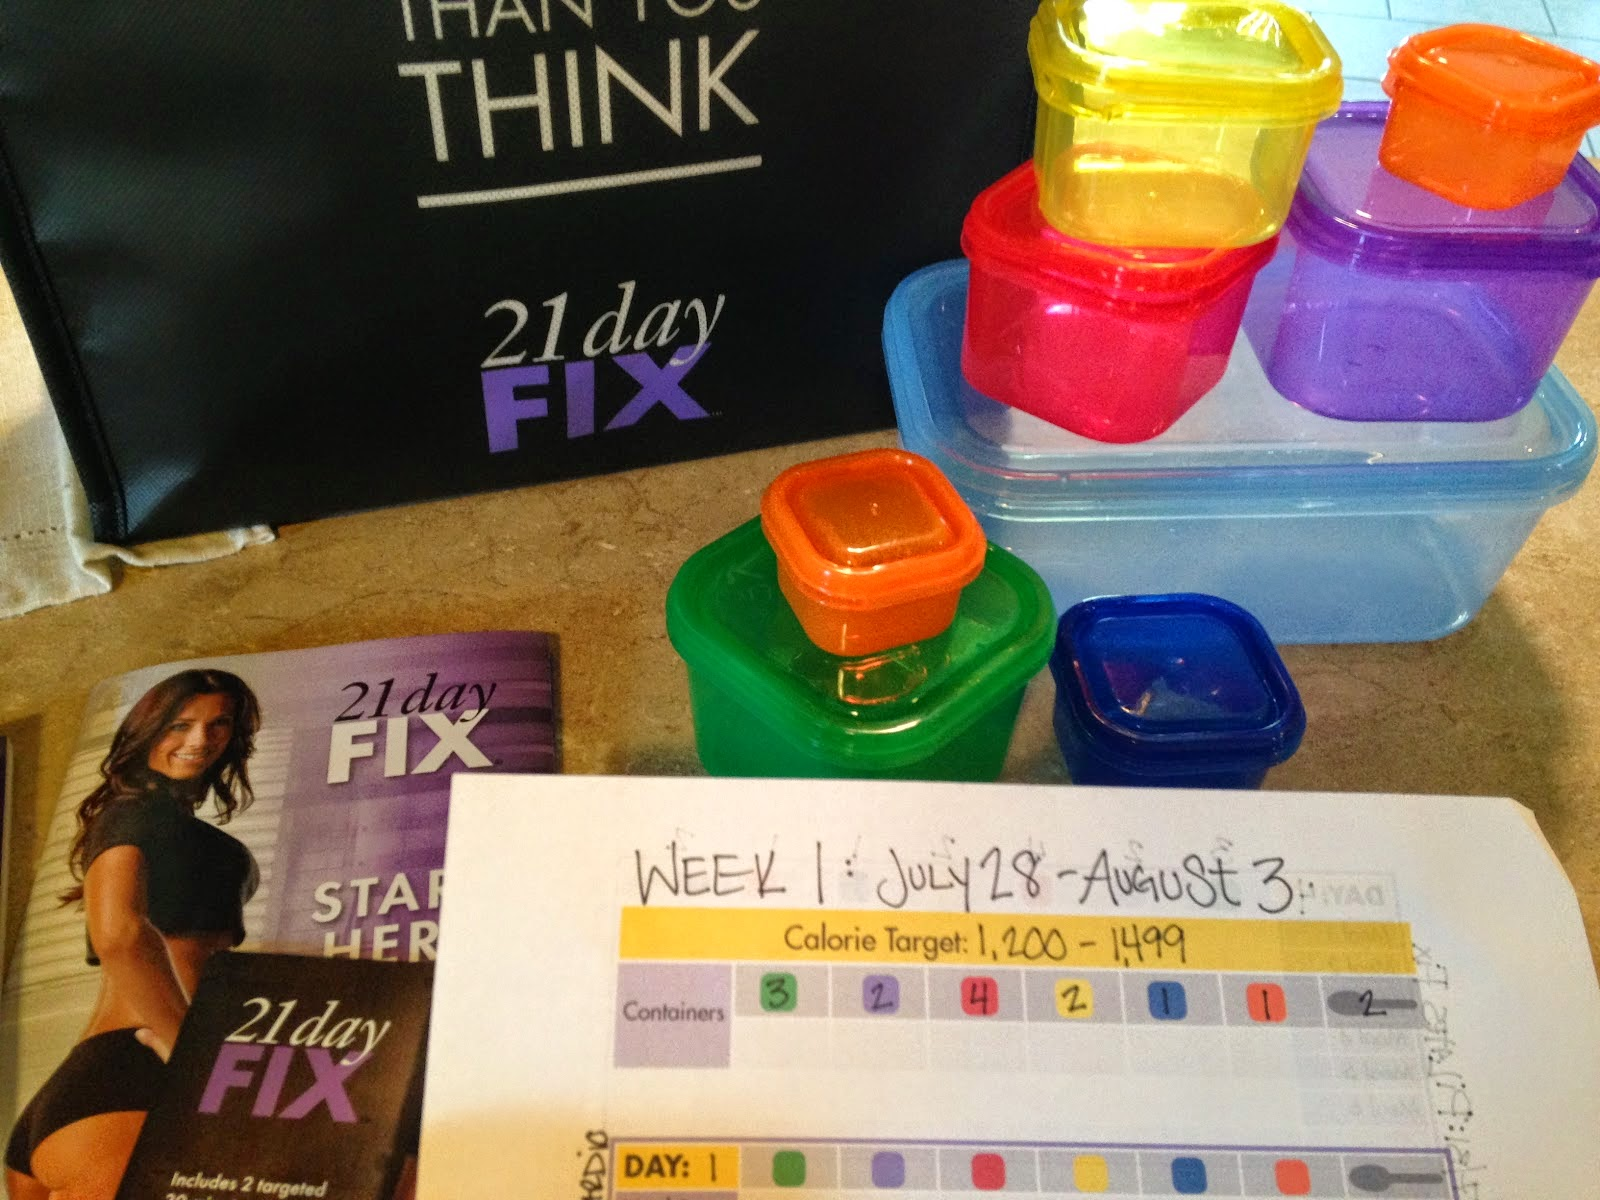 21 day fix challenge group, portion control, get support